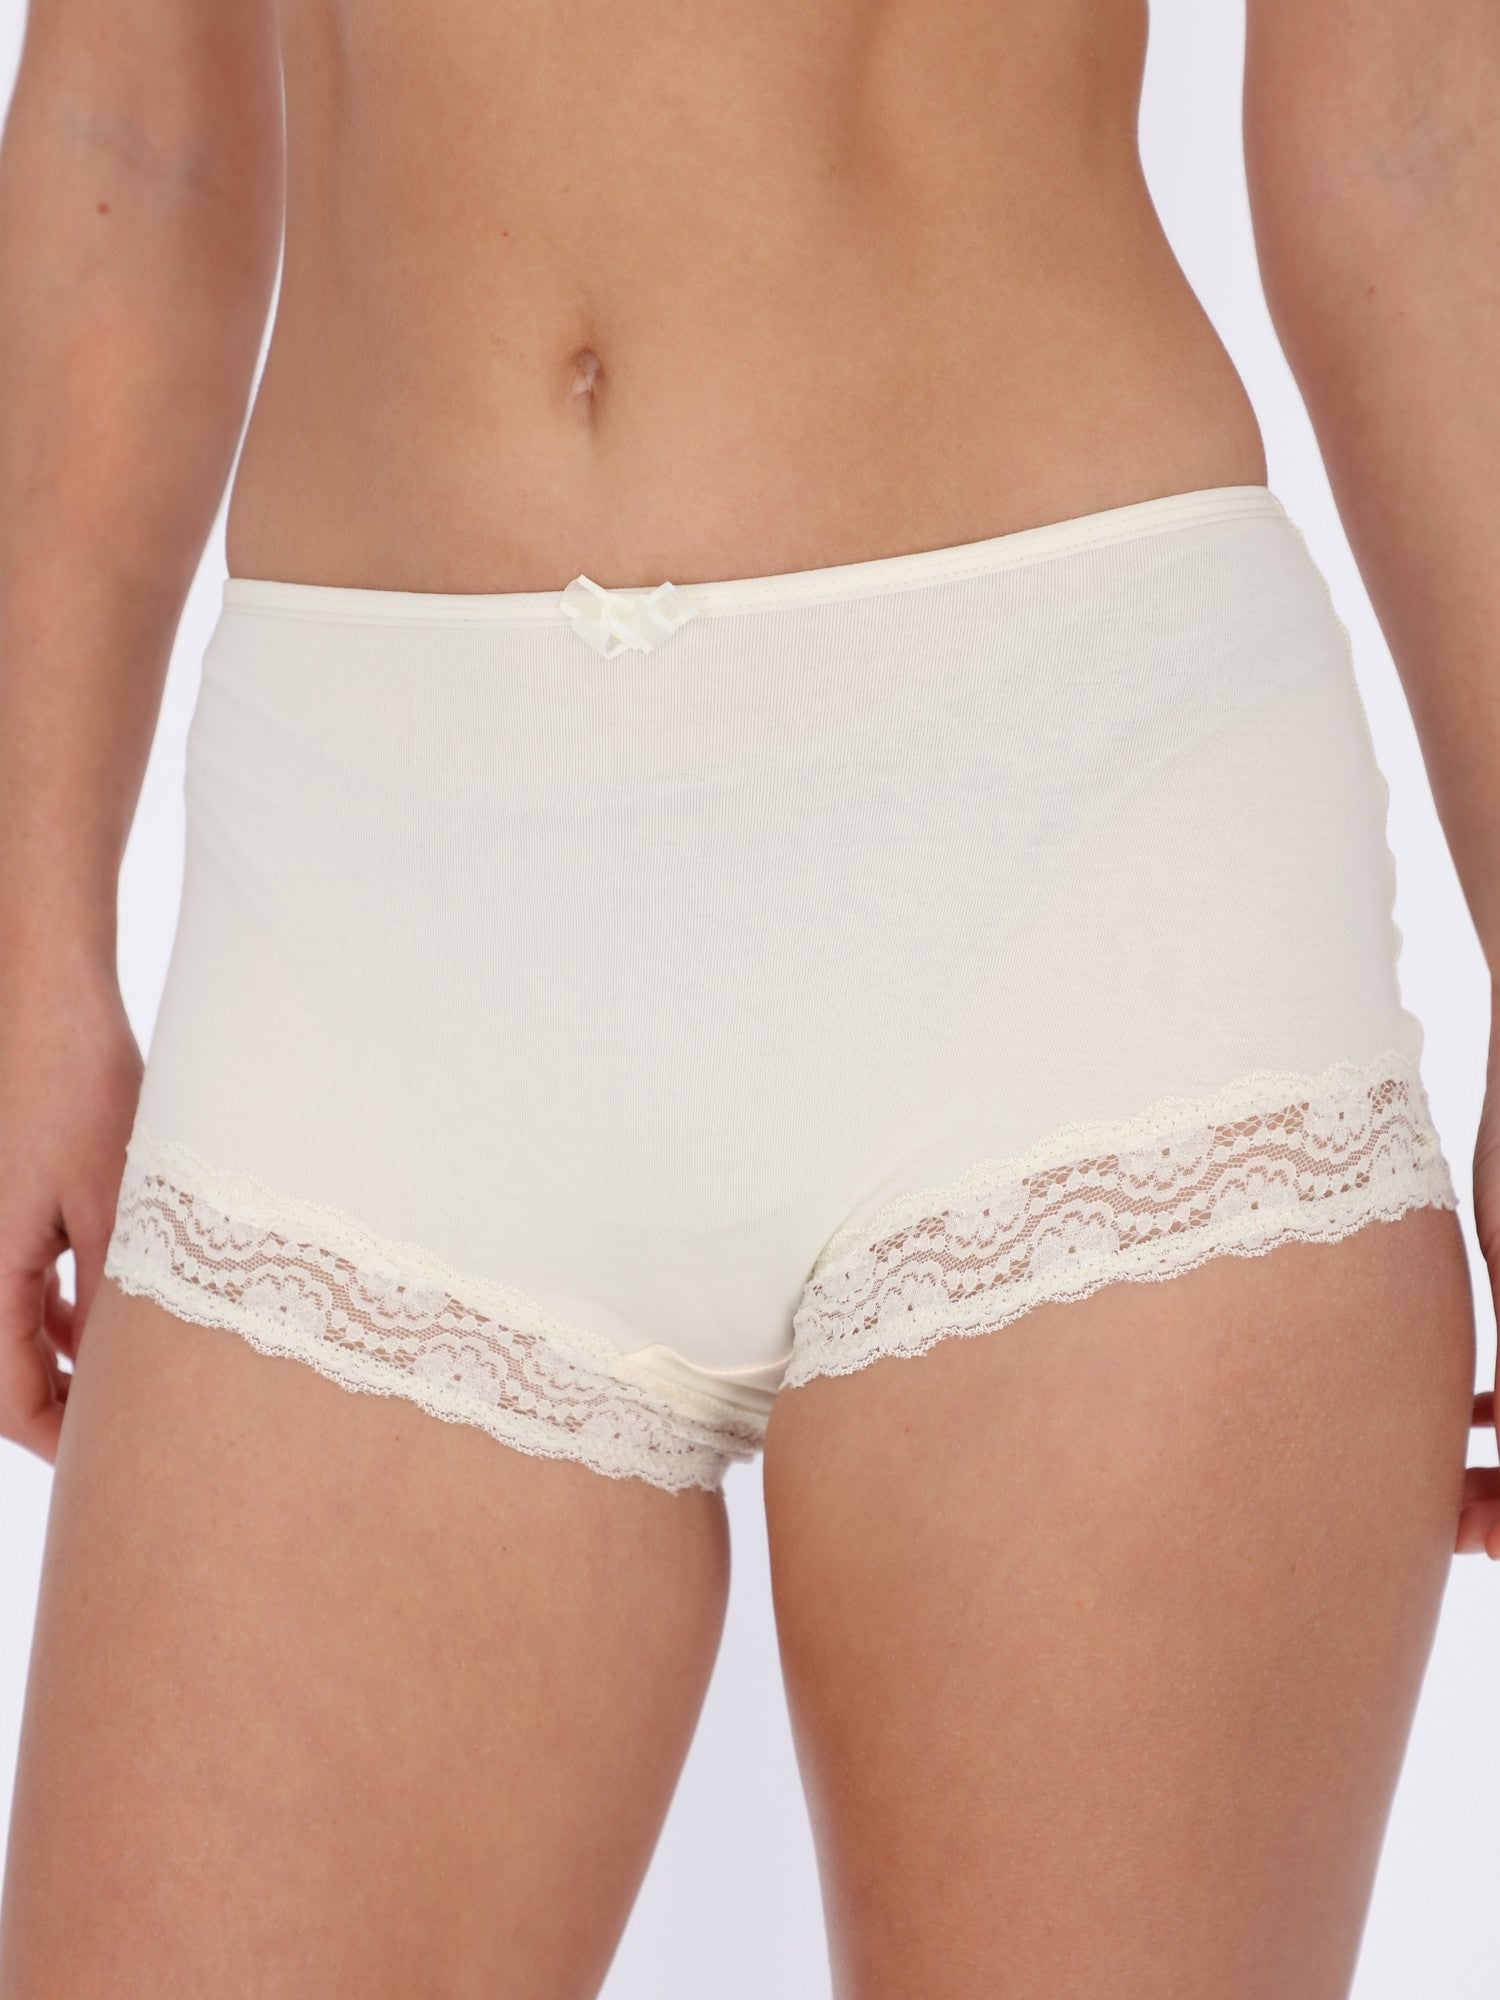 Lace Boy Cut Panty